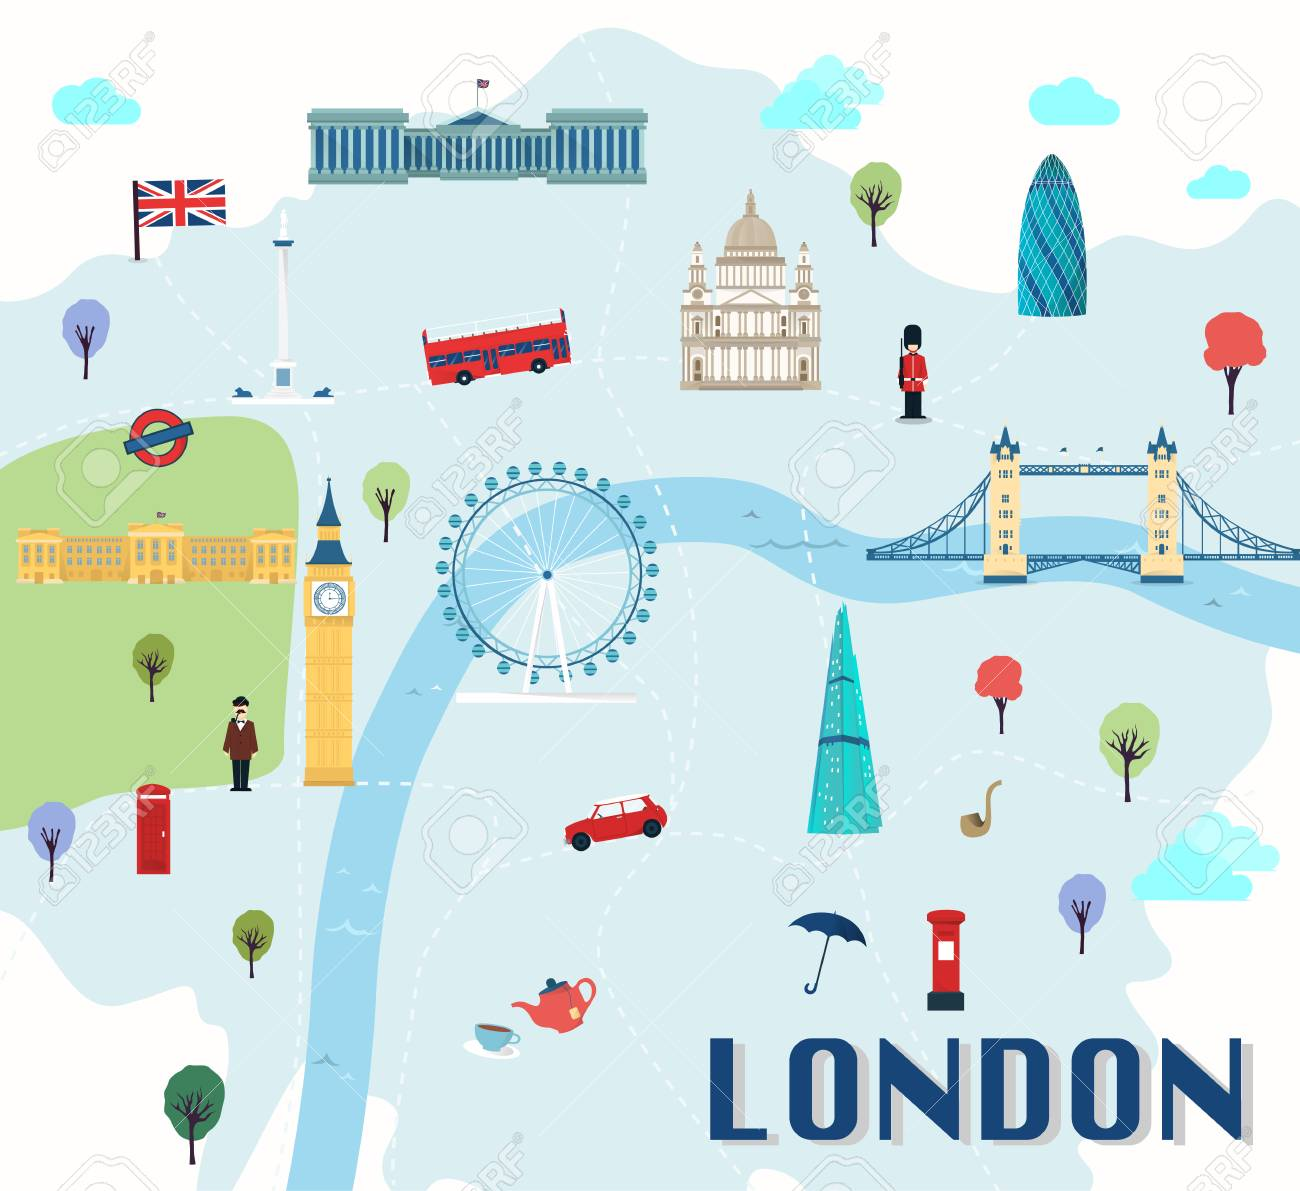 London Map Attractions.Map Of London Attractions Vector And Illustration